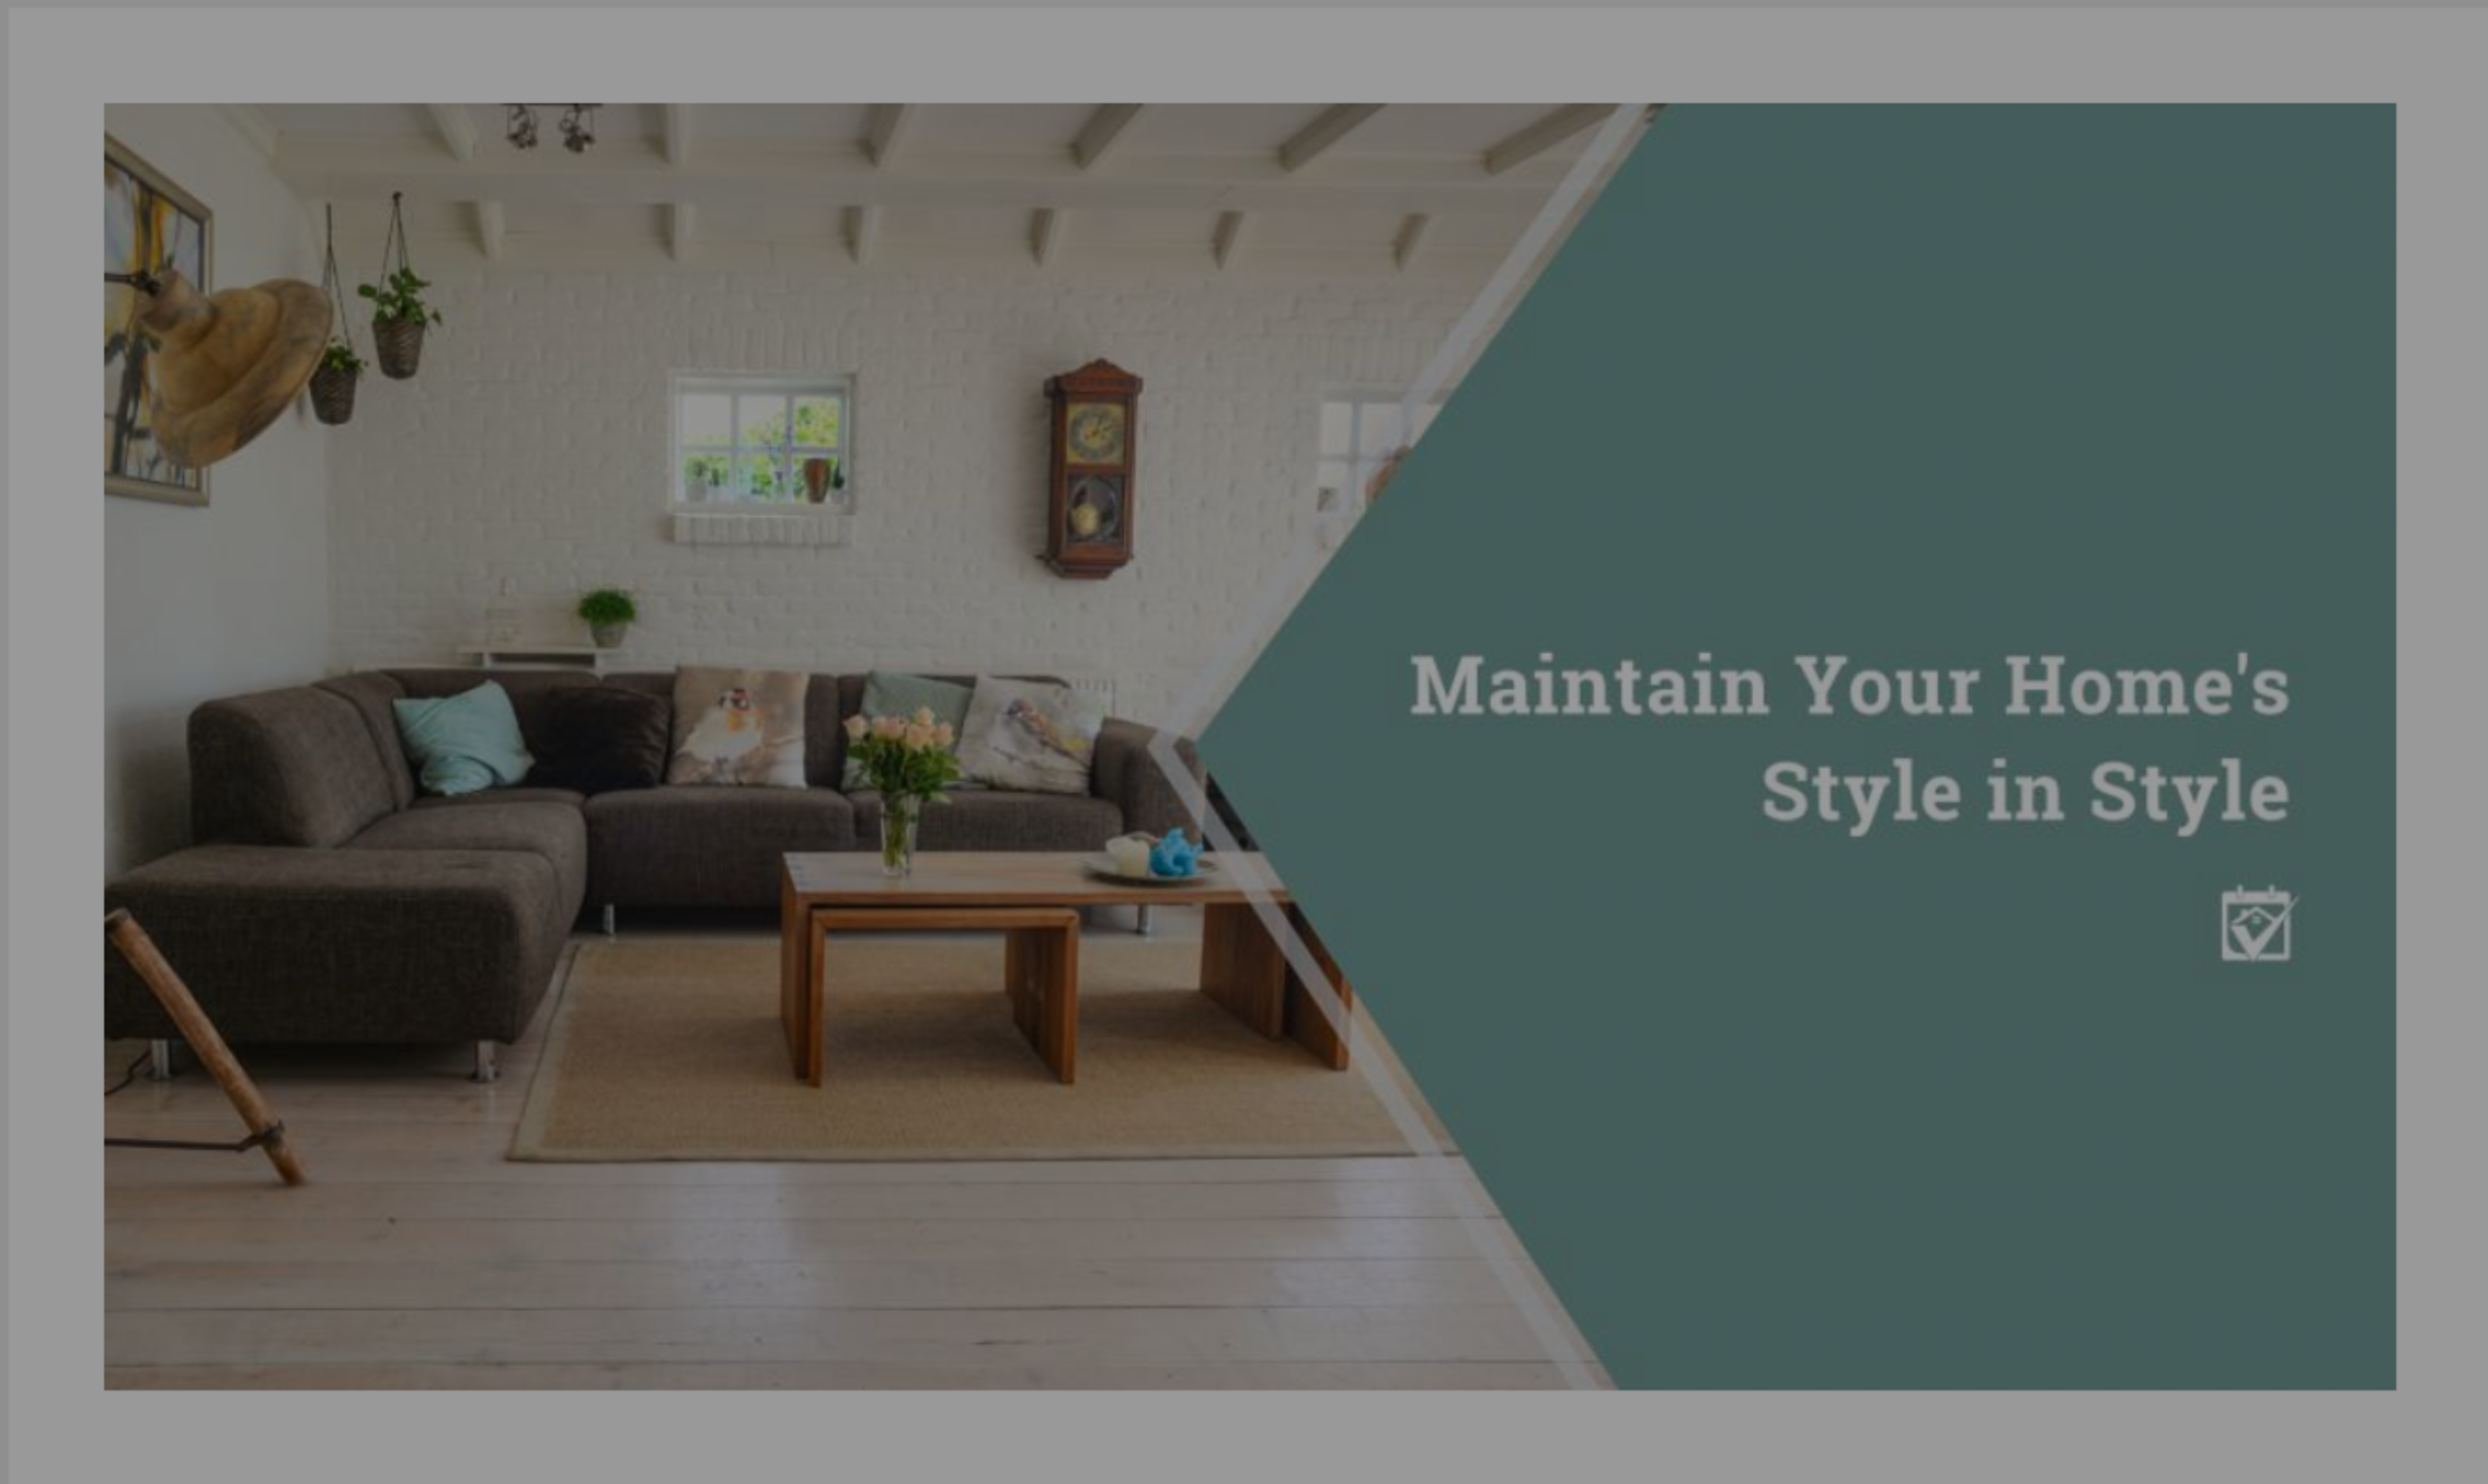 Maintain Your Home's Style When Updating